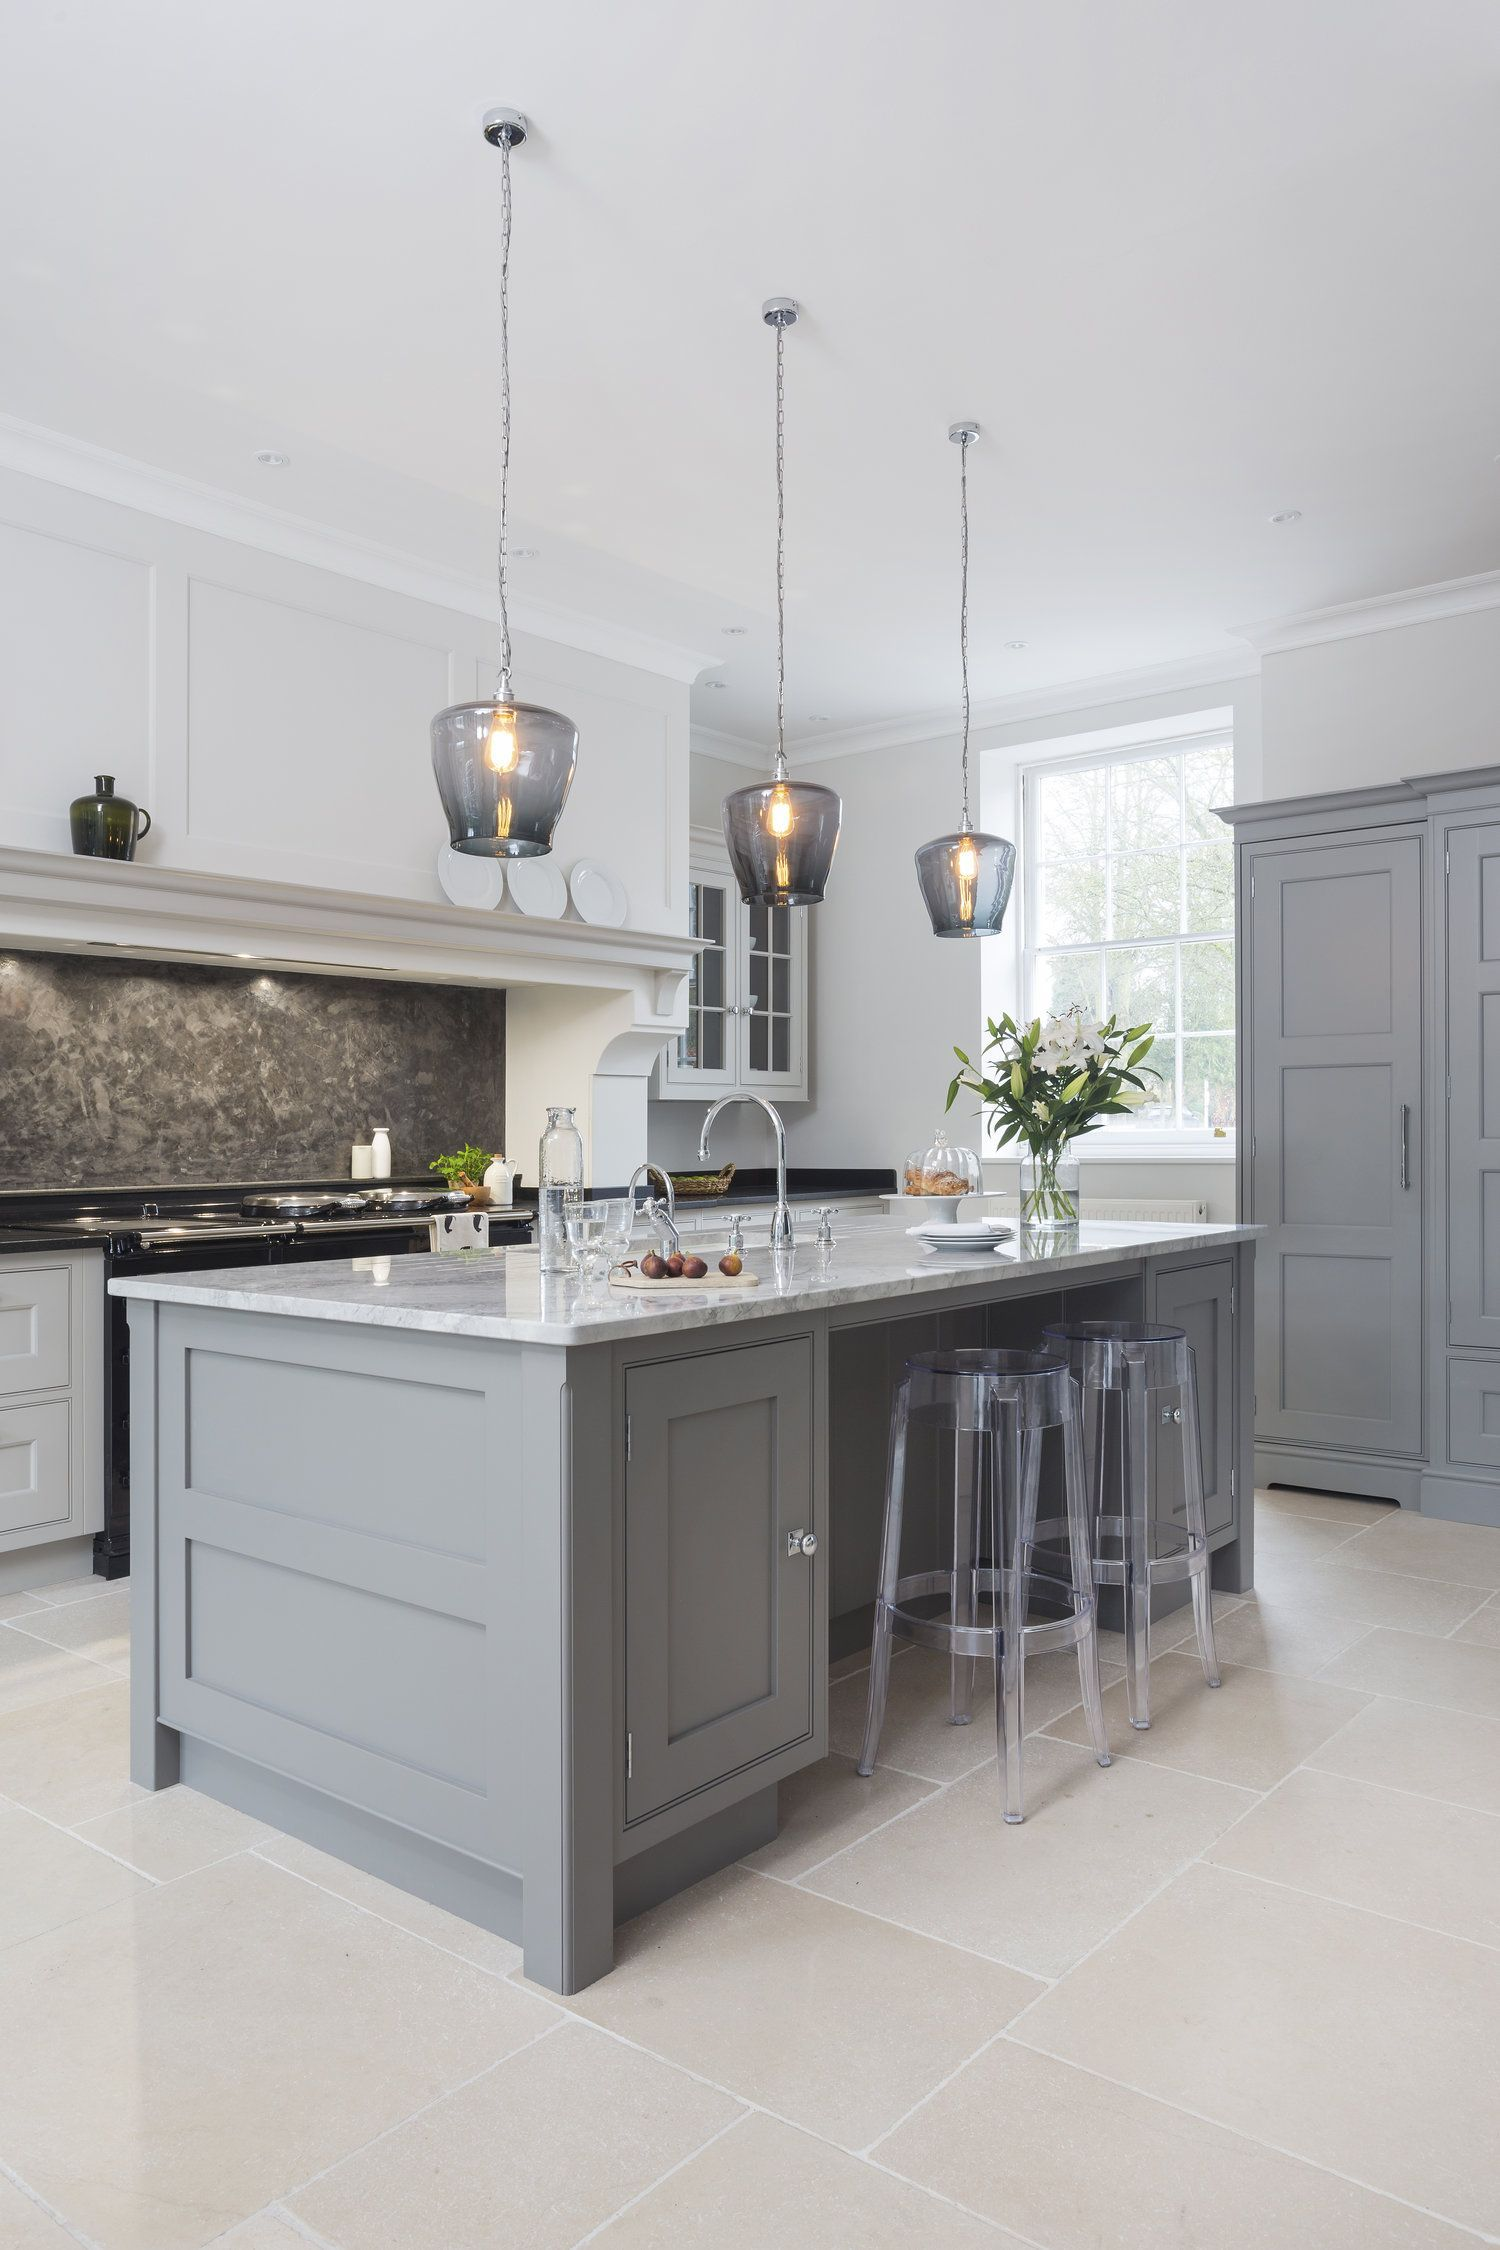 29+ Small Kitchen Lighting Ideas Pictures for Low Ceilings